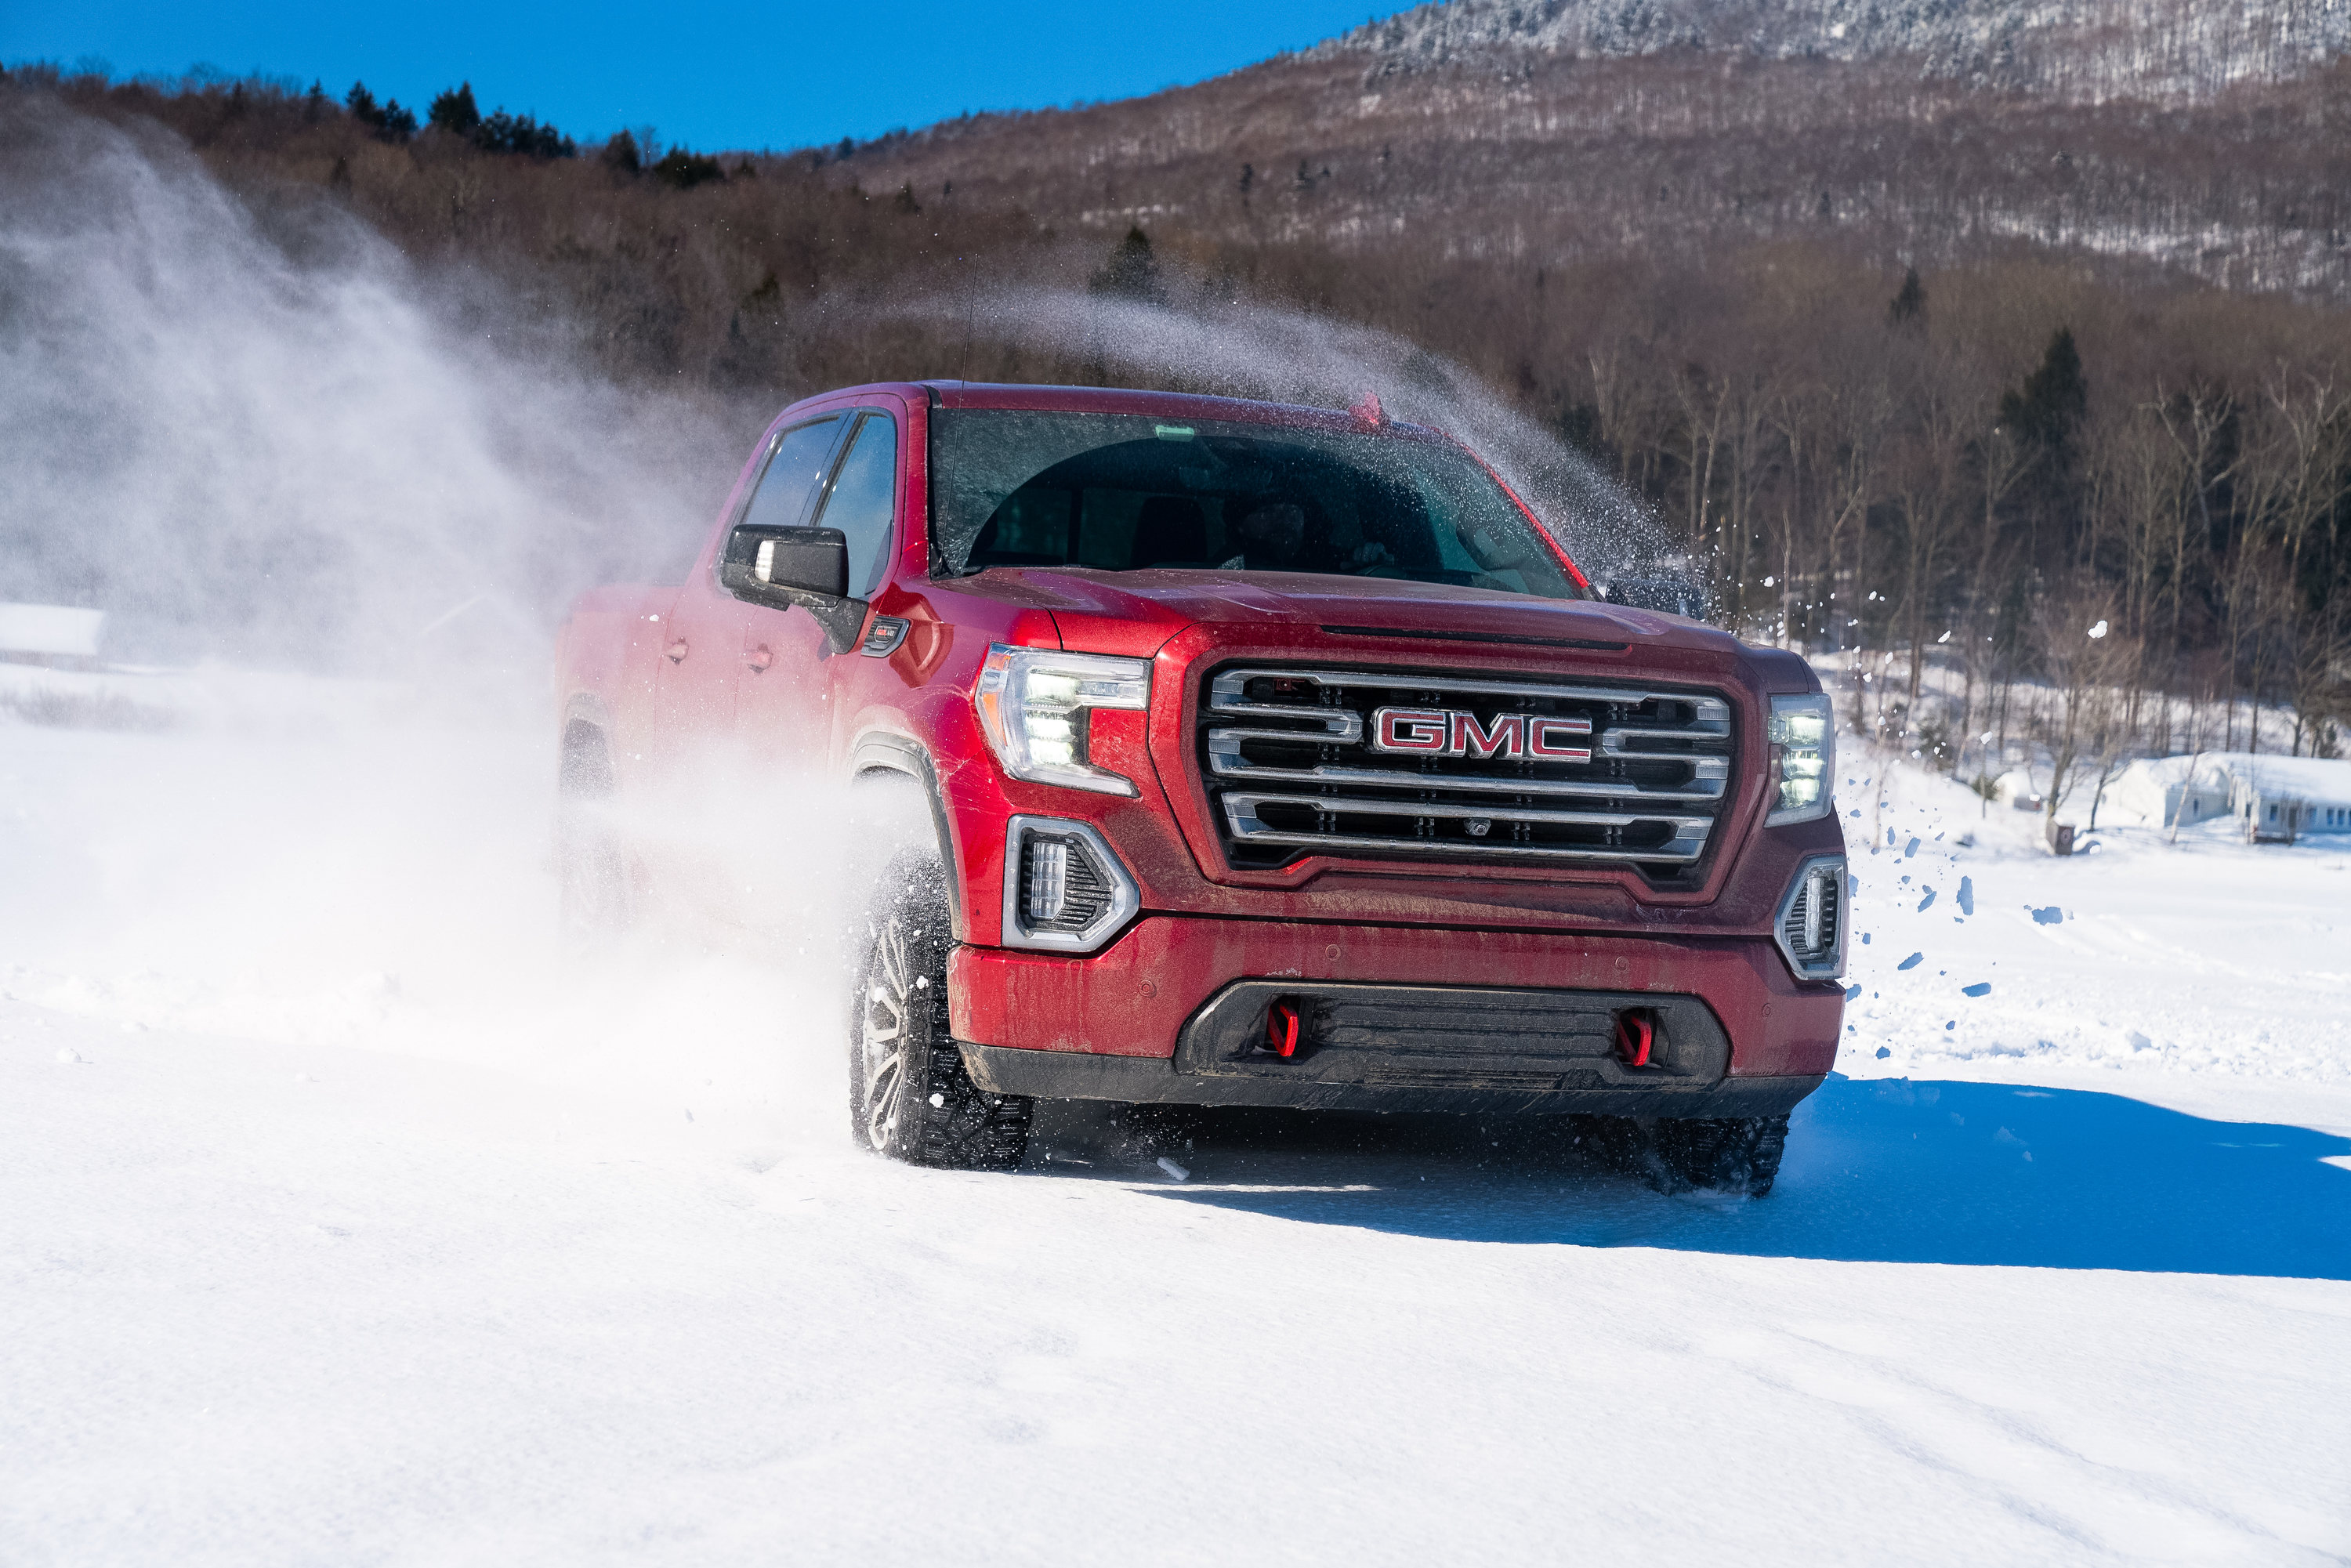 Winter driving tips: try a Red GMC Sierra on snow covered lake in Stowe VT